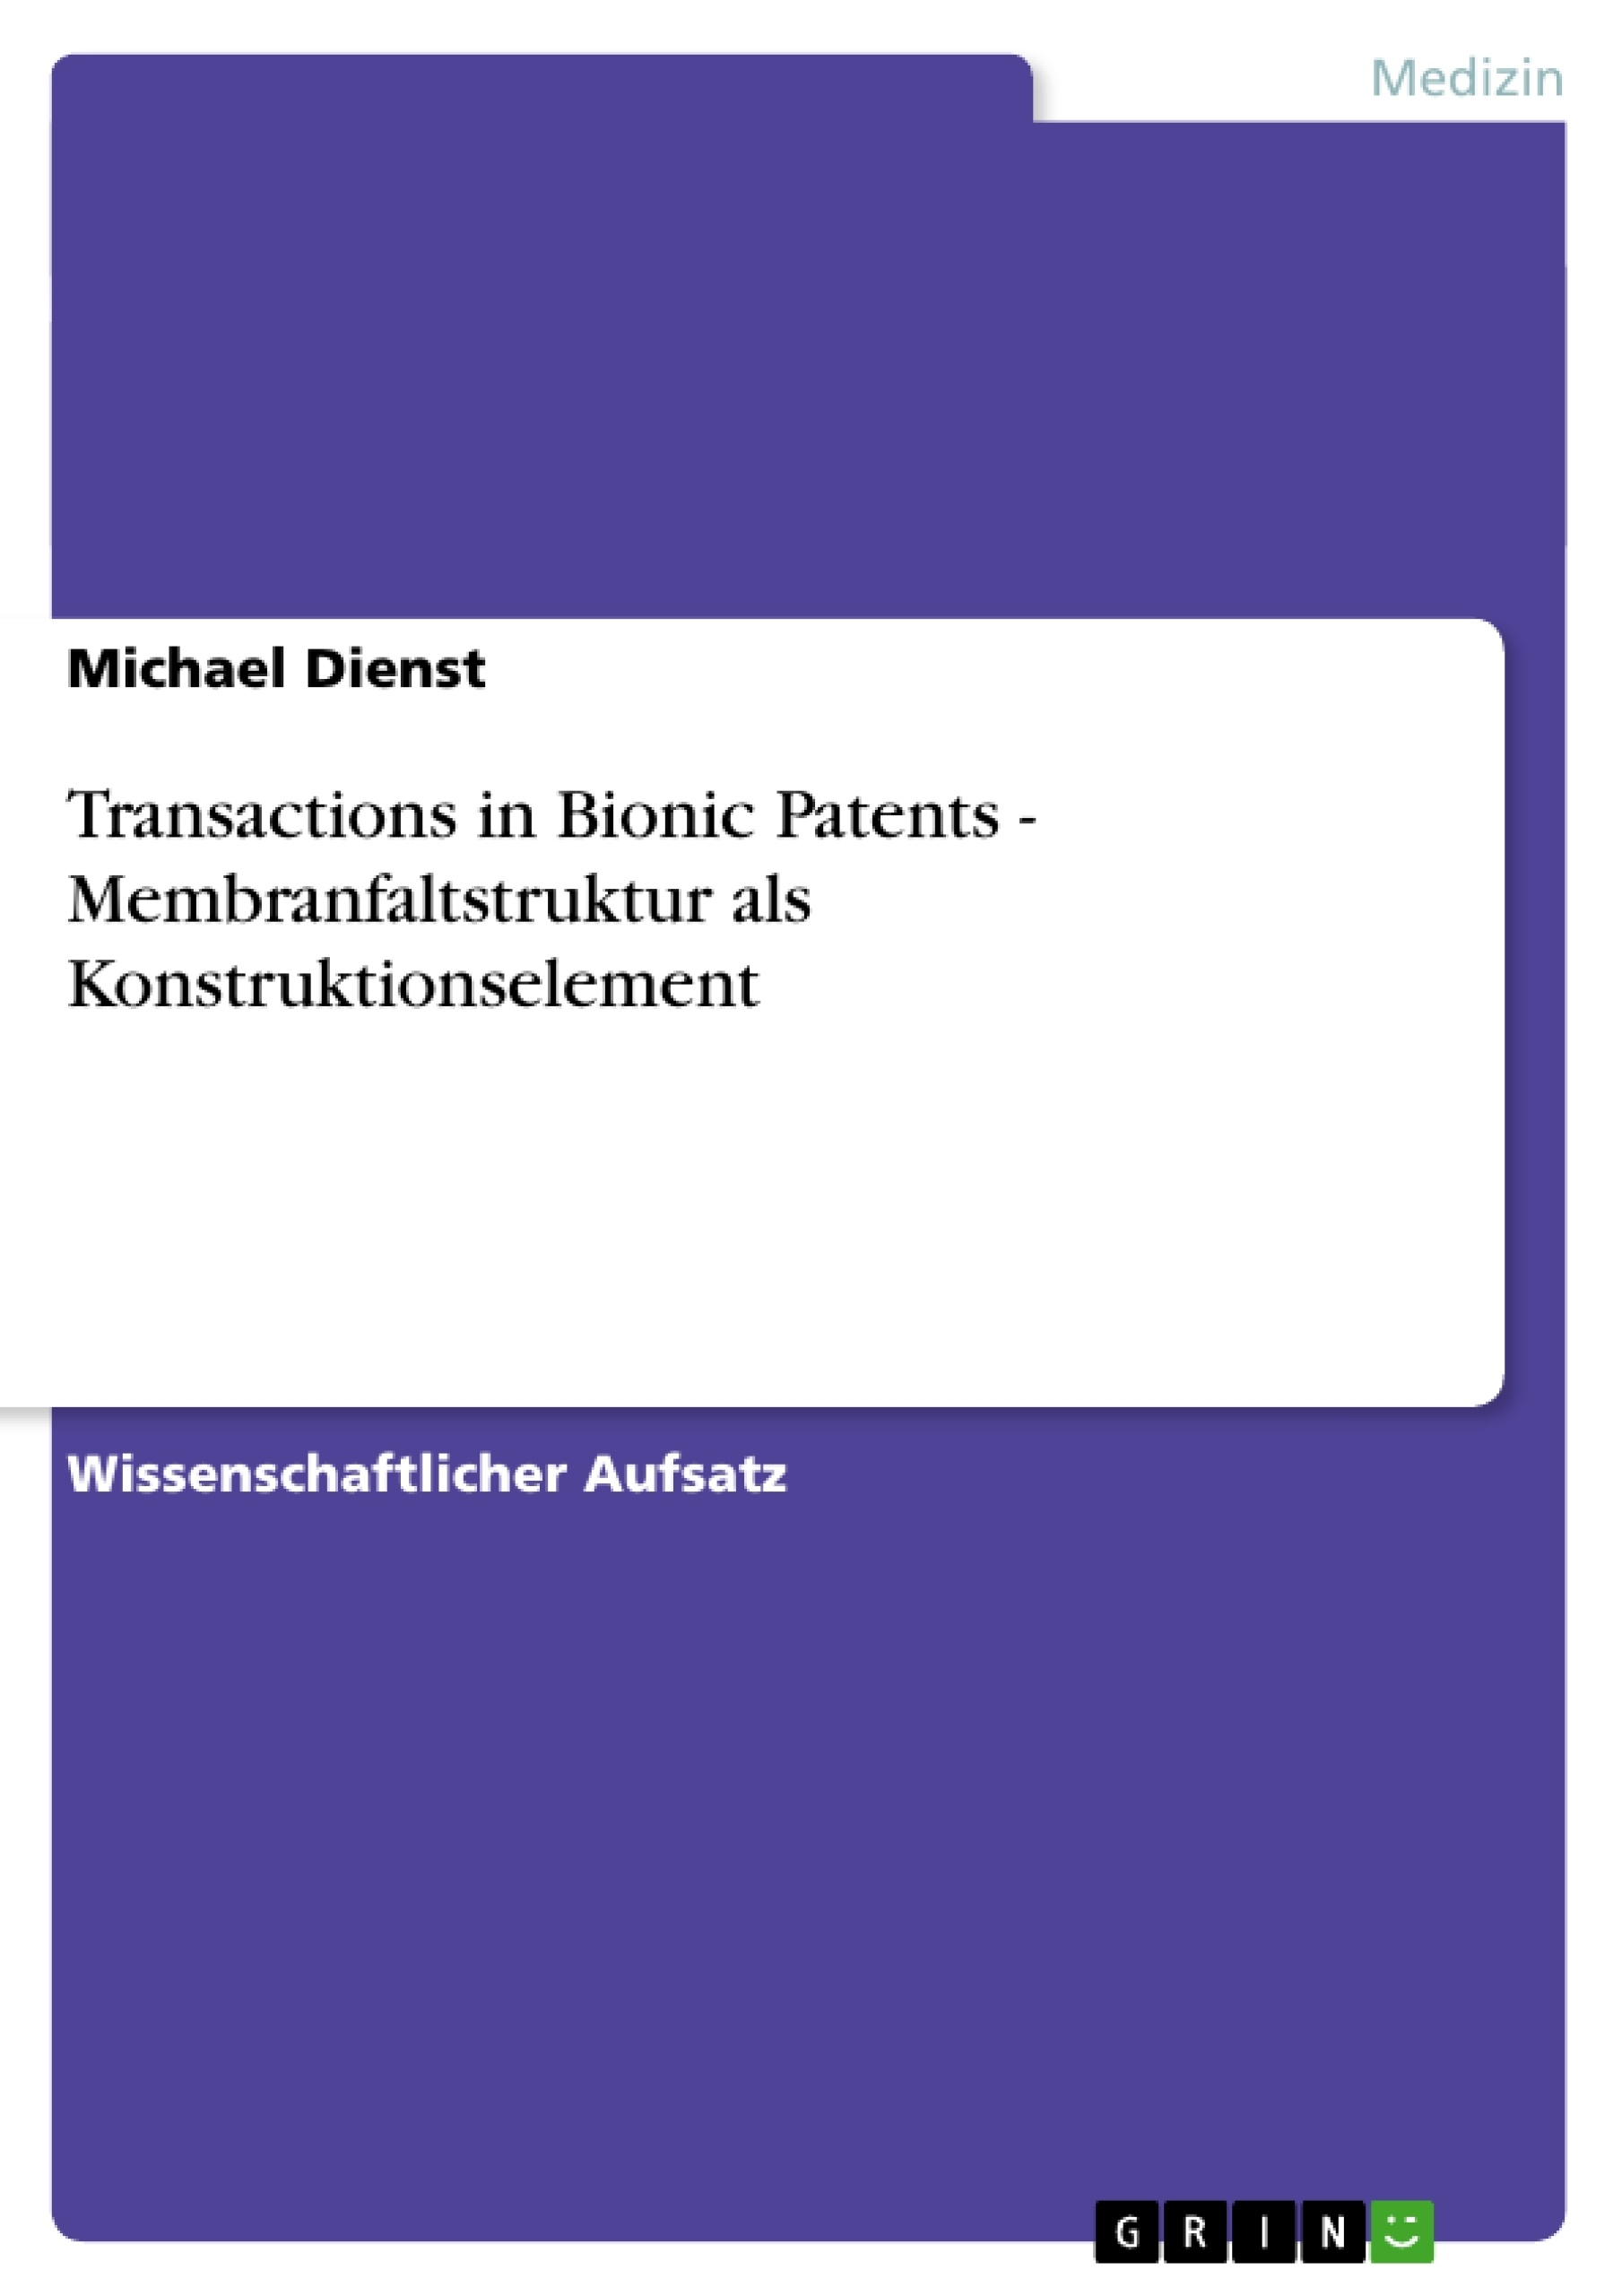 Titel: Transactions in Bionic Patents - Membranfaltstruktur als Konstruktionselement